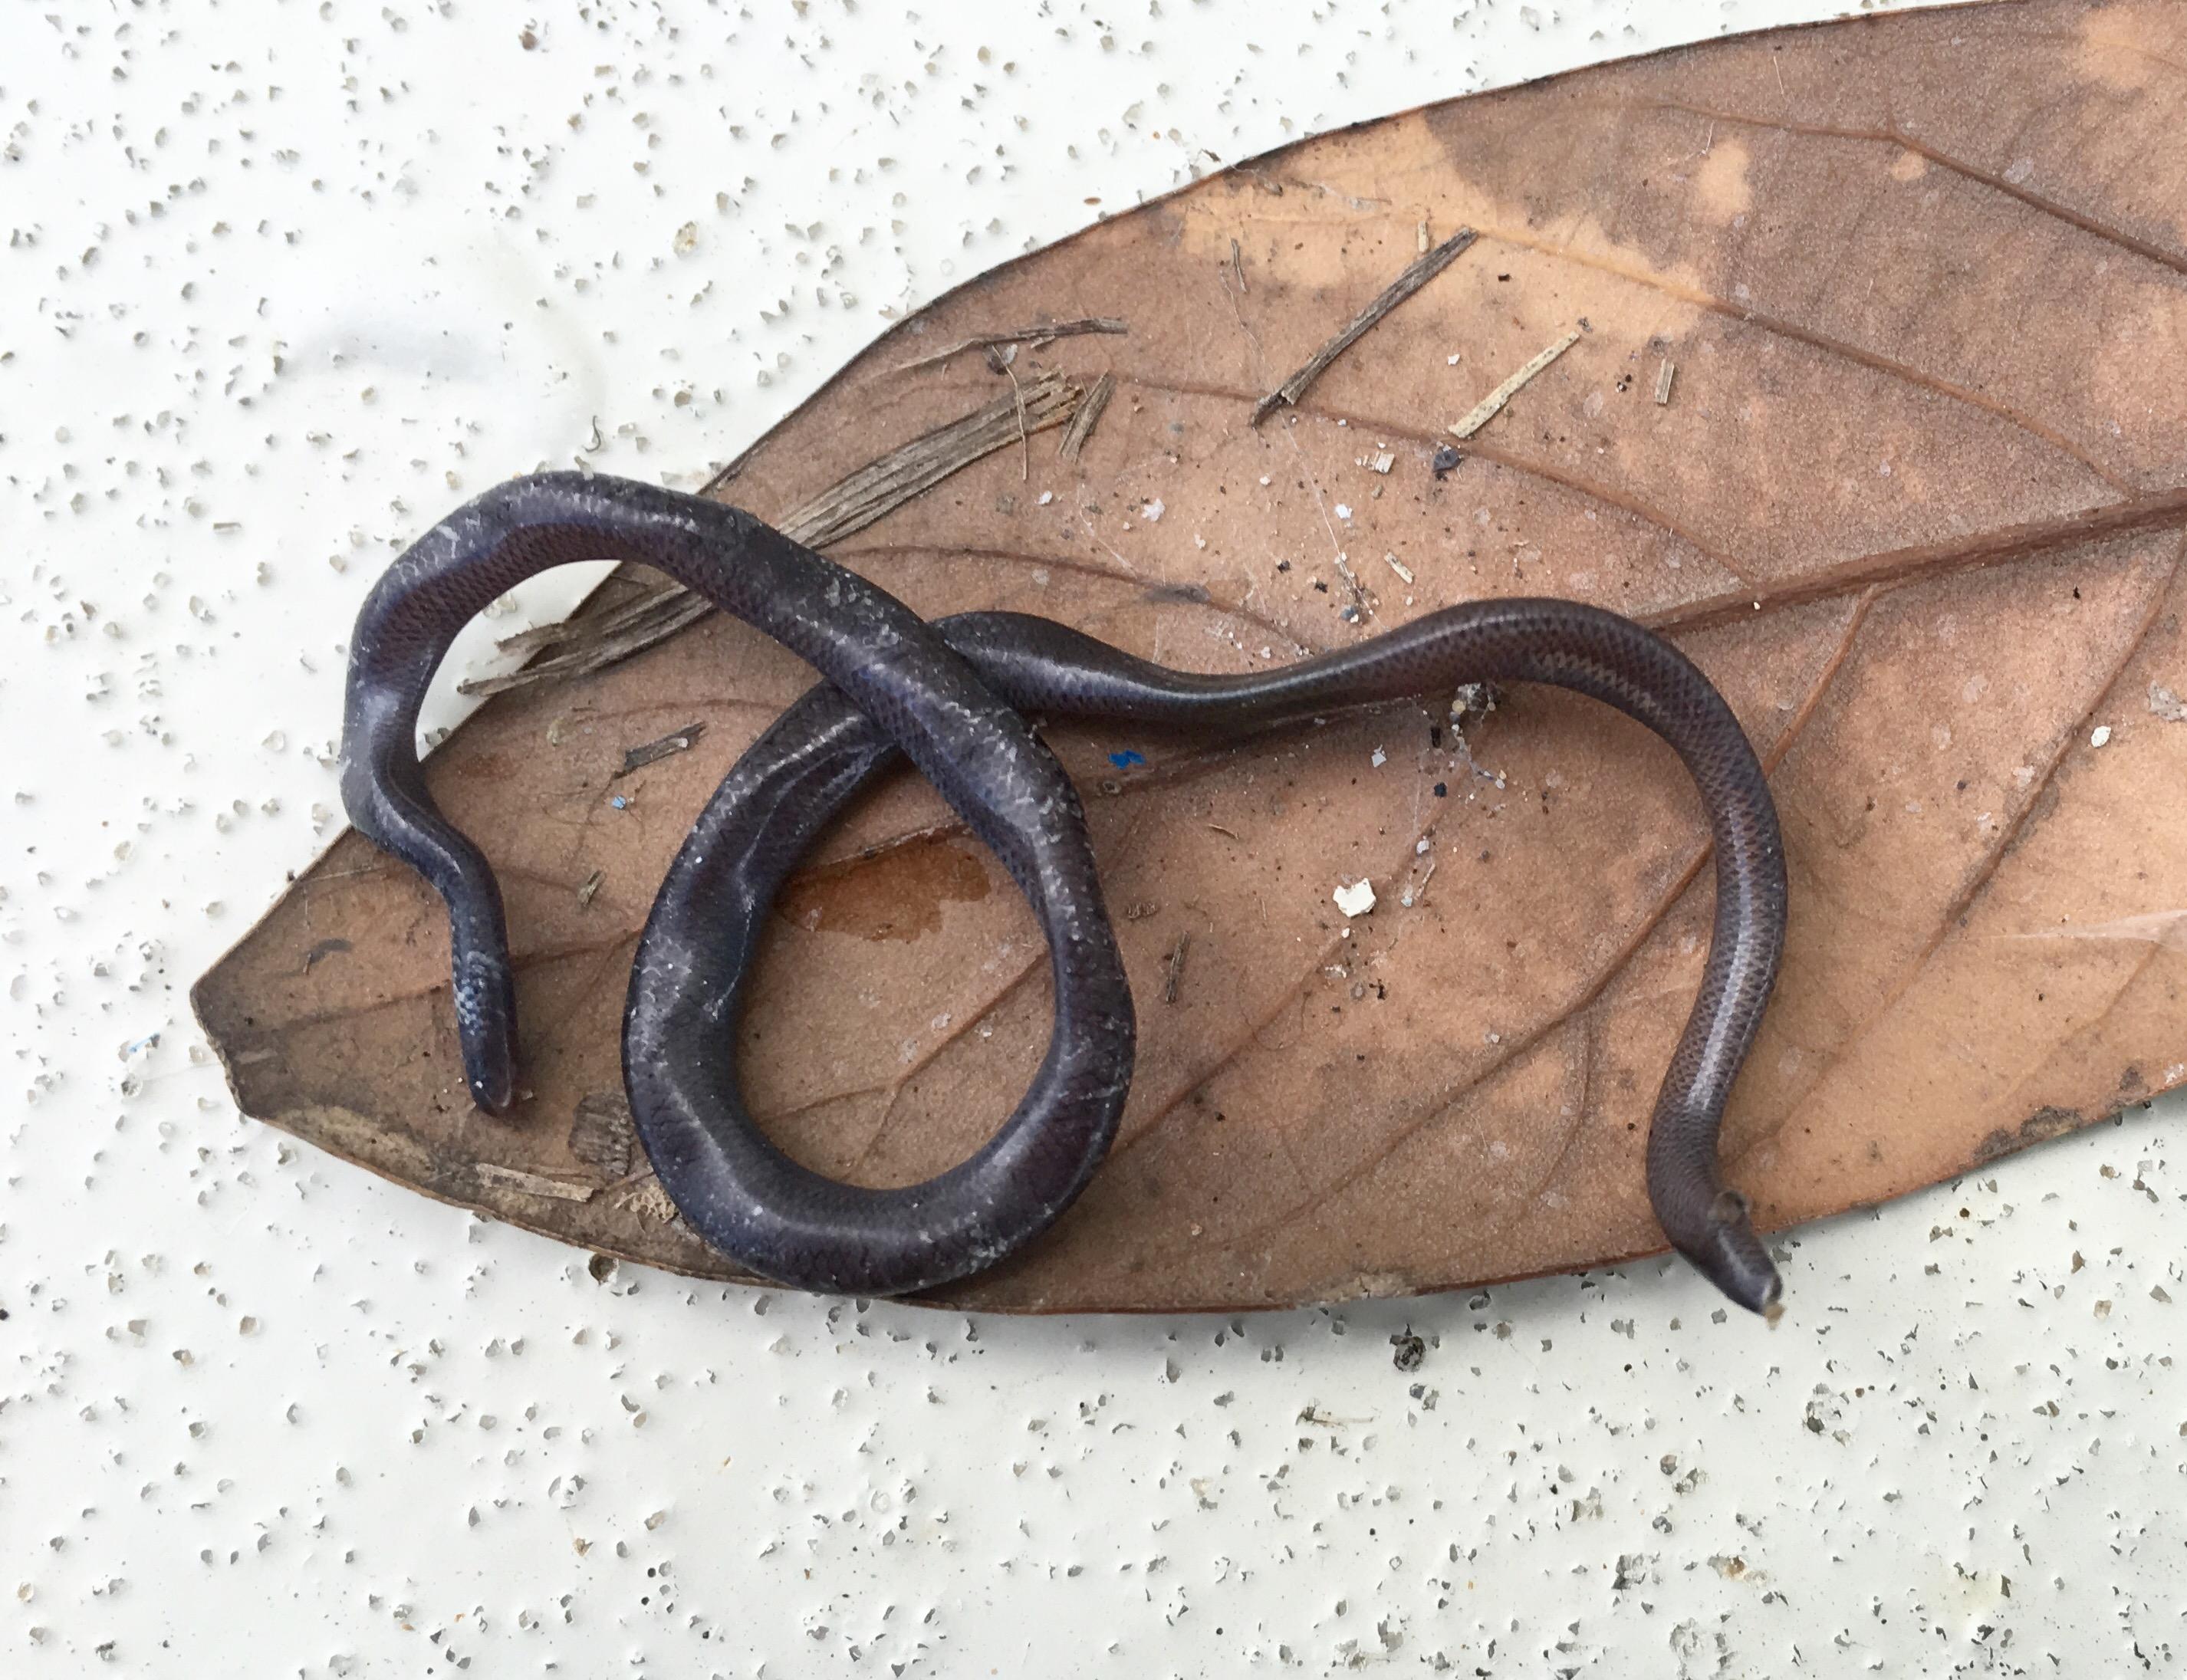 Blind snake -dried from summer heat